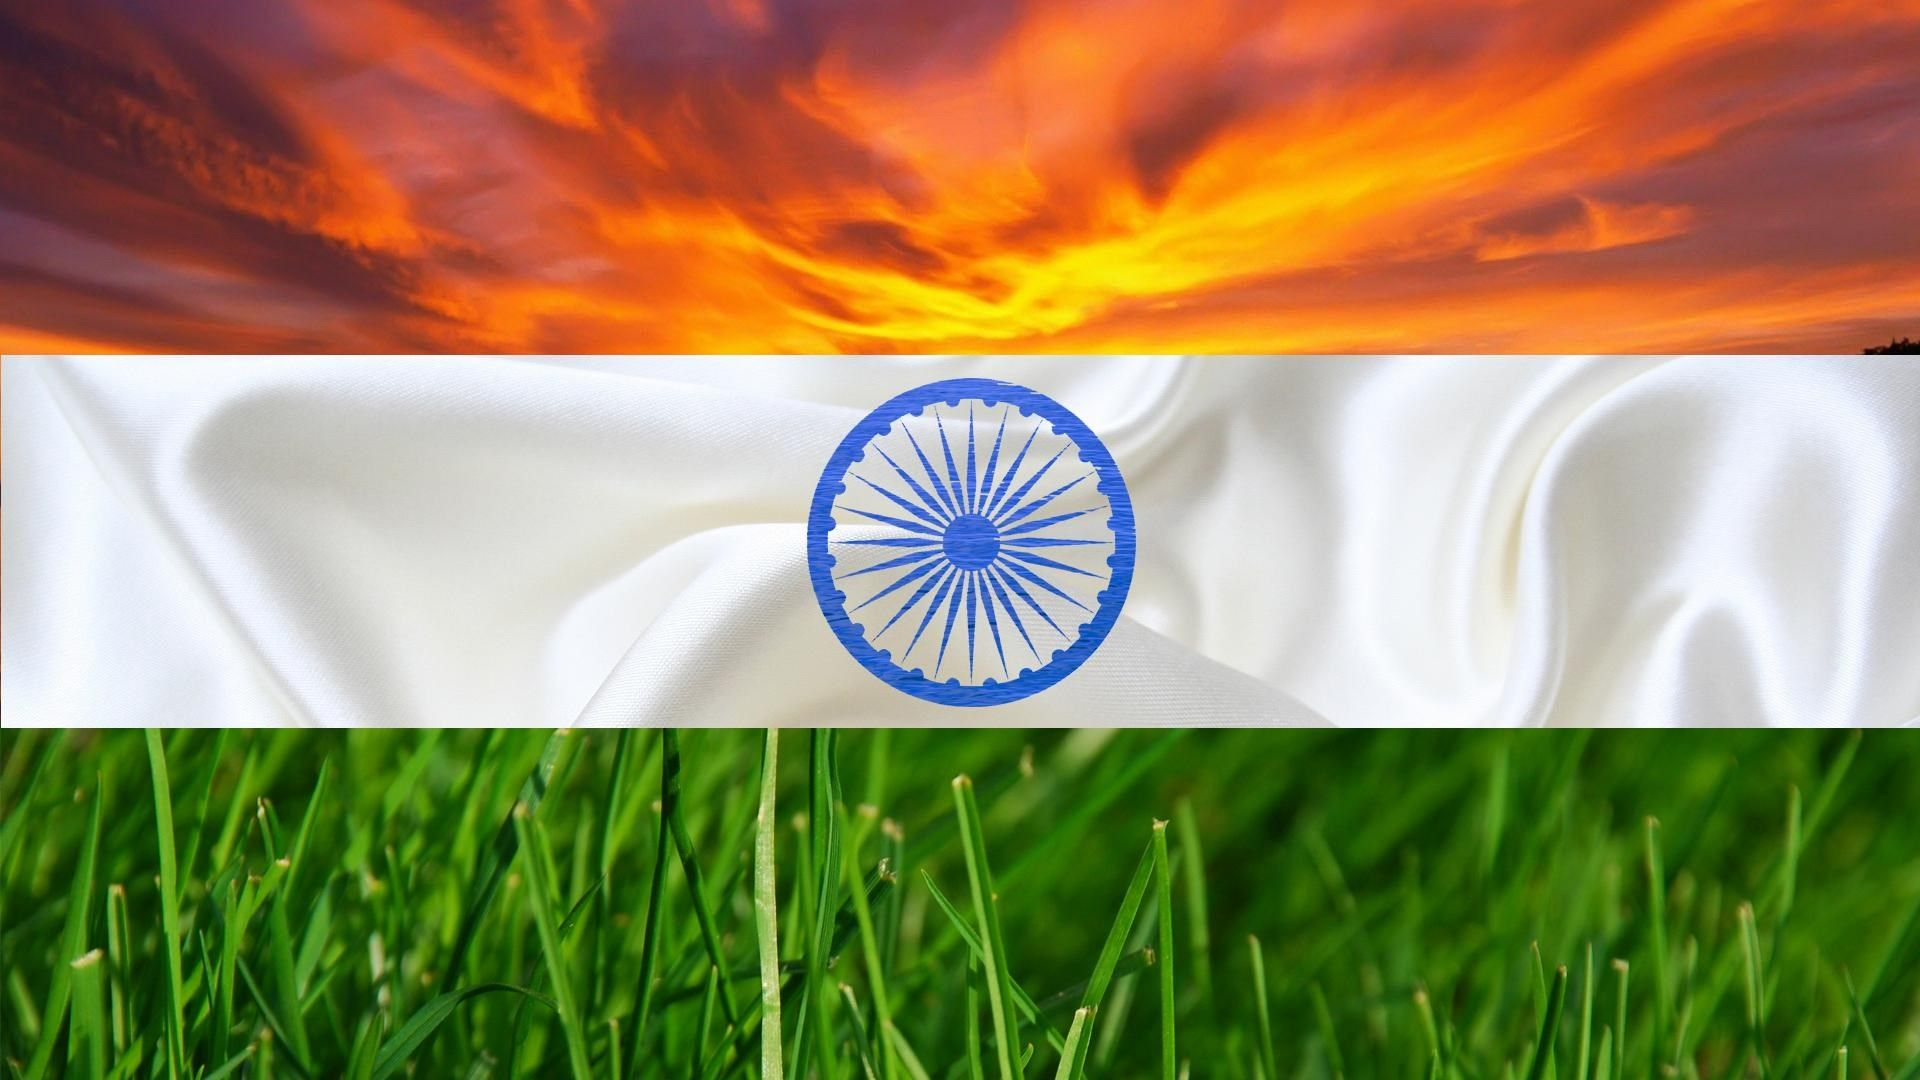 Indian Flag Hd Download Images Indian Flag Wallpaper Indian Flag Images India Flag